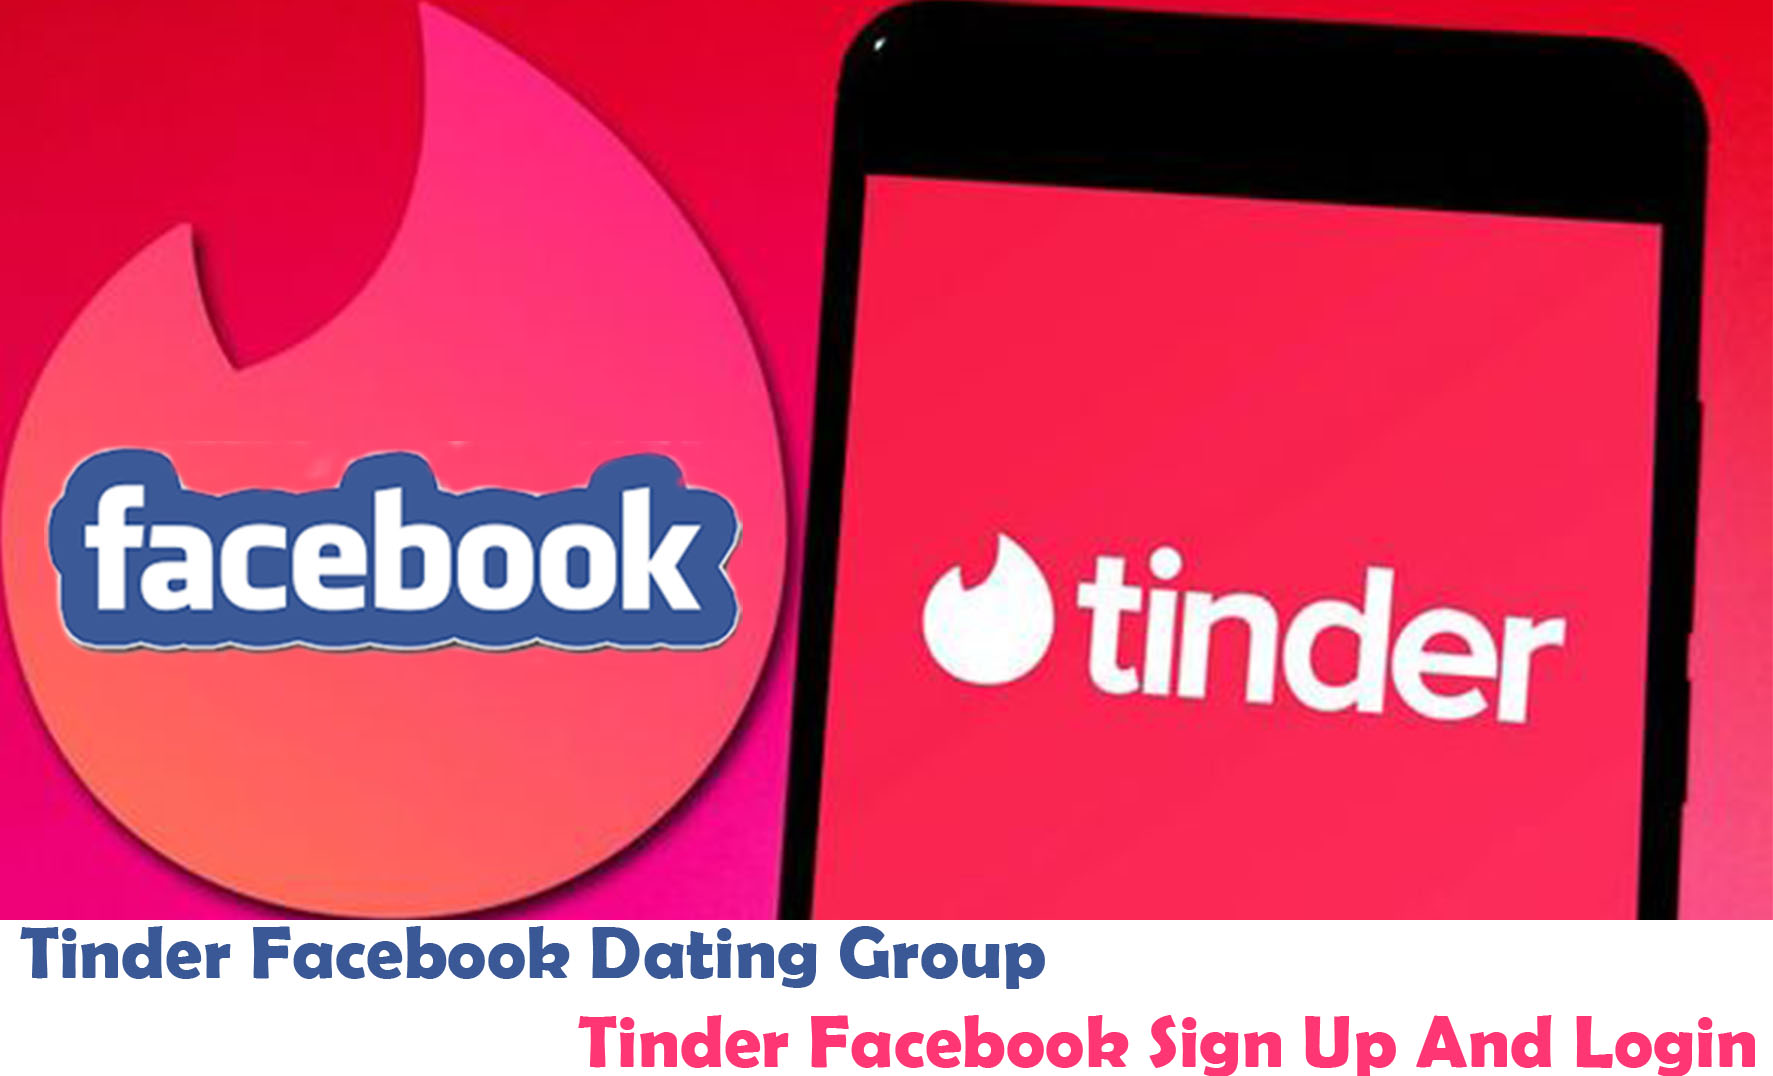 The dating group login speed dating ft worth tx